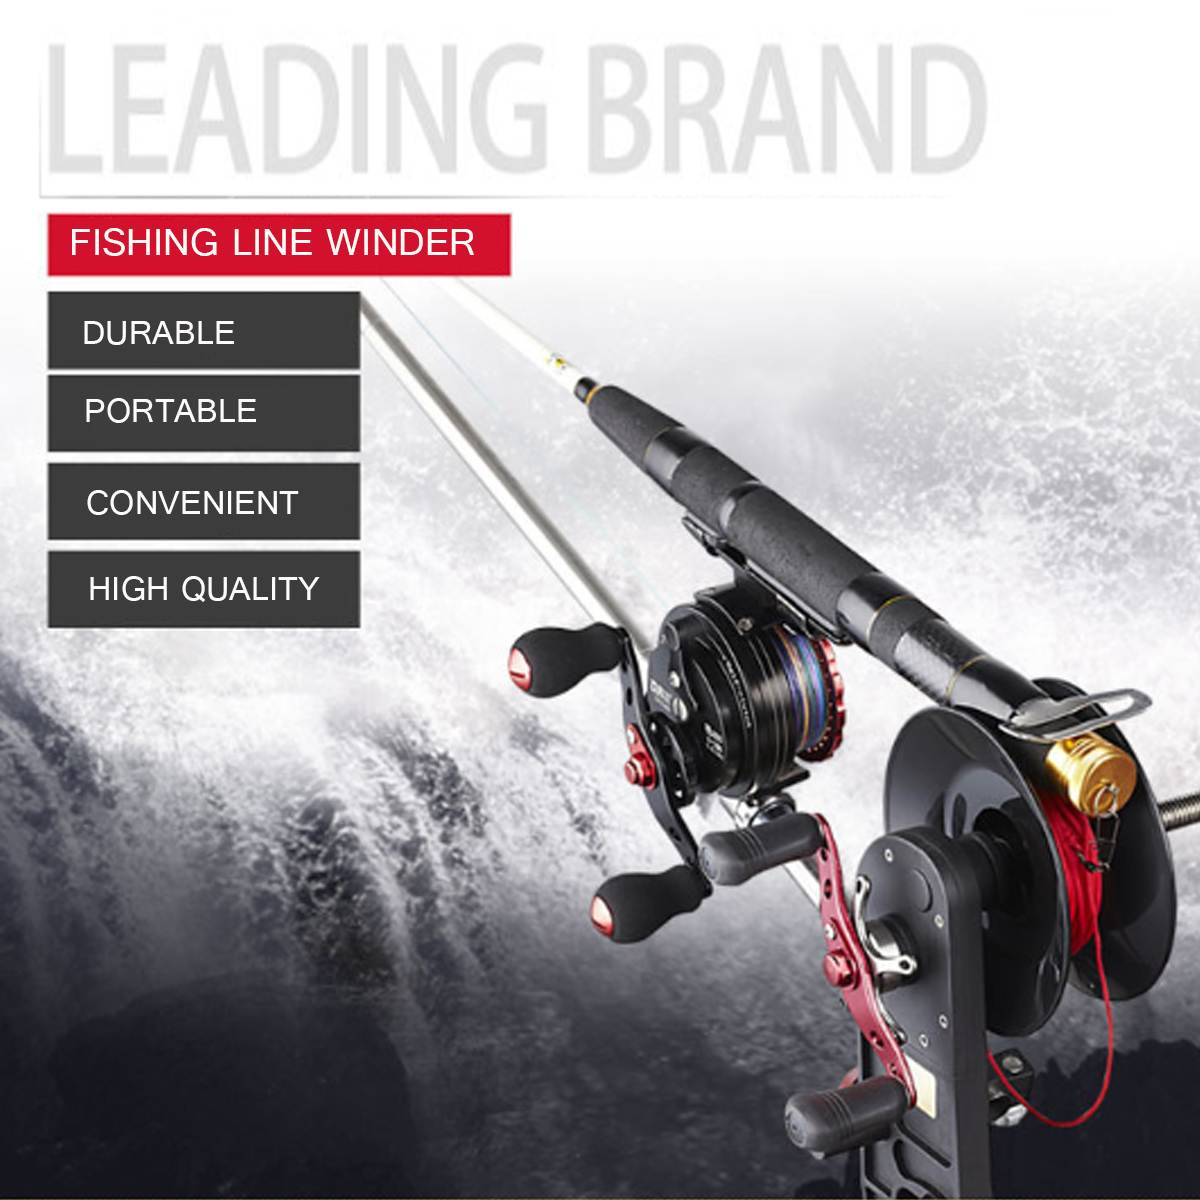 Fishing Line Winder Spooler System Machine Baitcasting Reel Spooler Portable Aluminum Fishing Line Winder Reel Spool Station